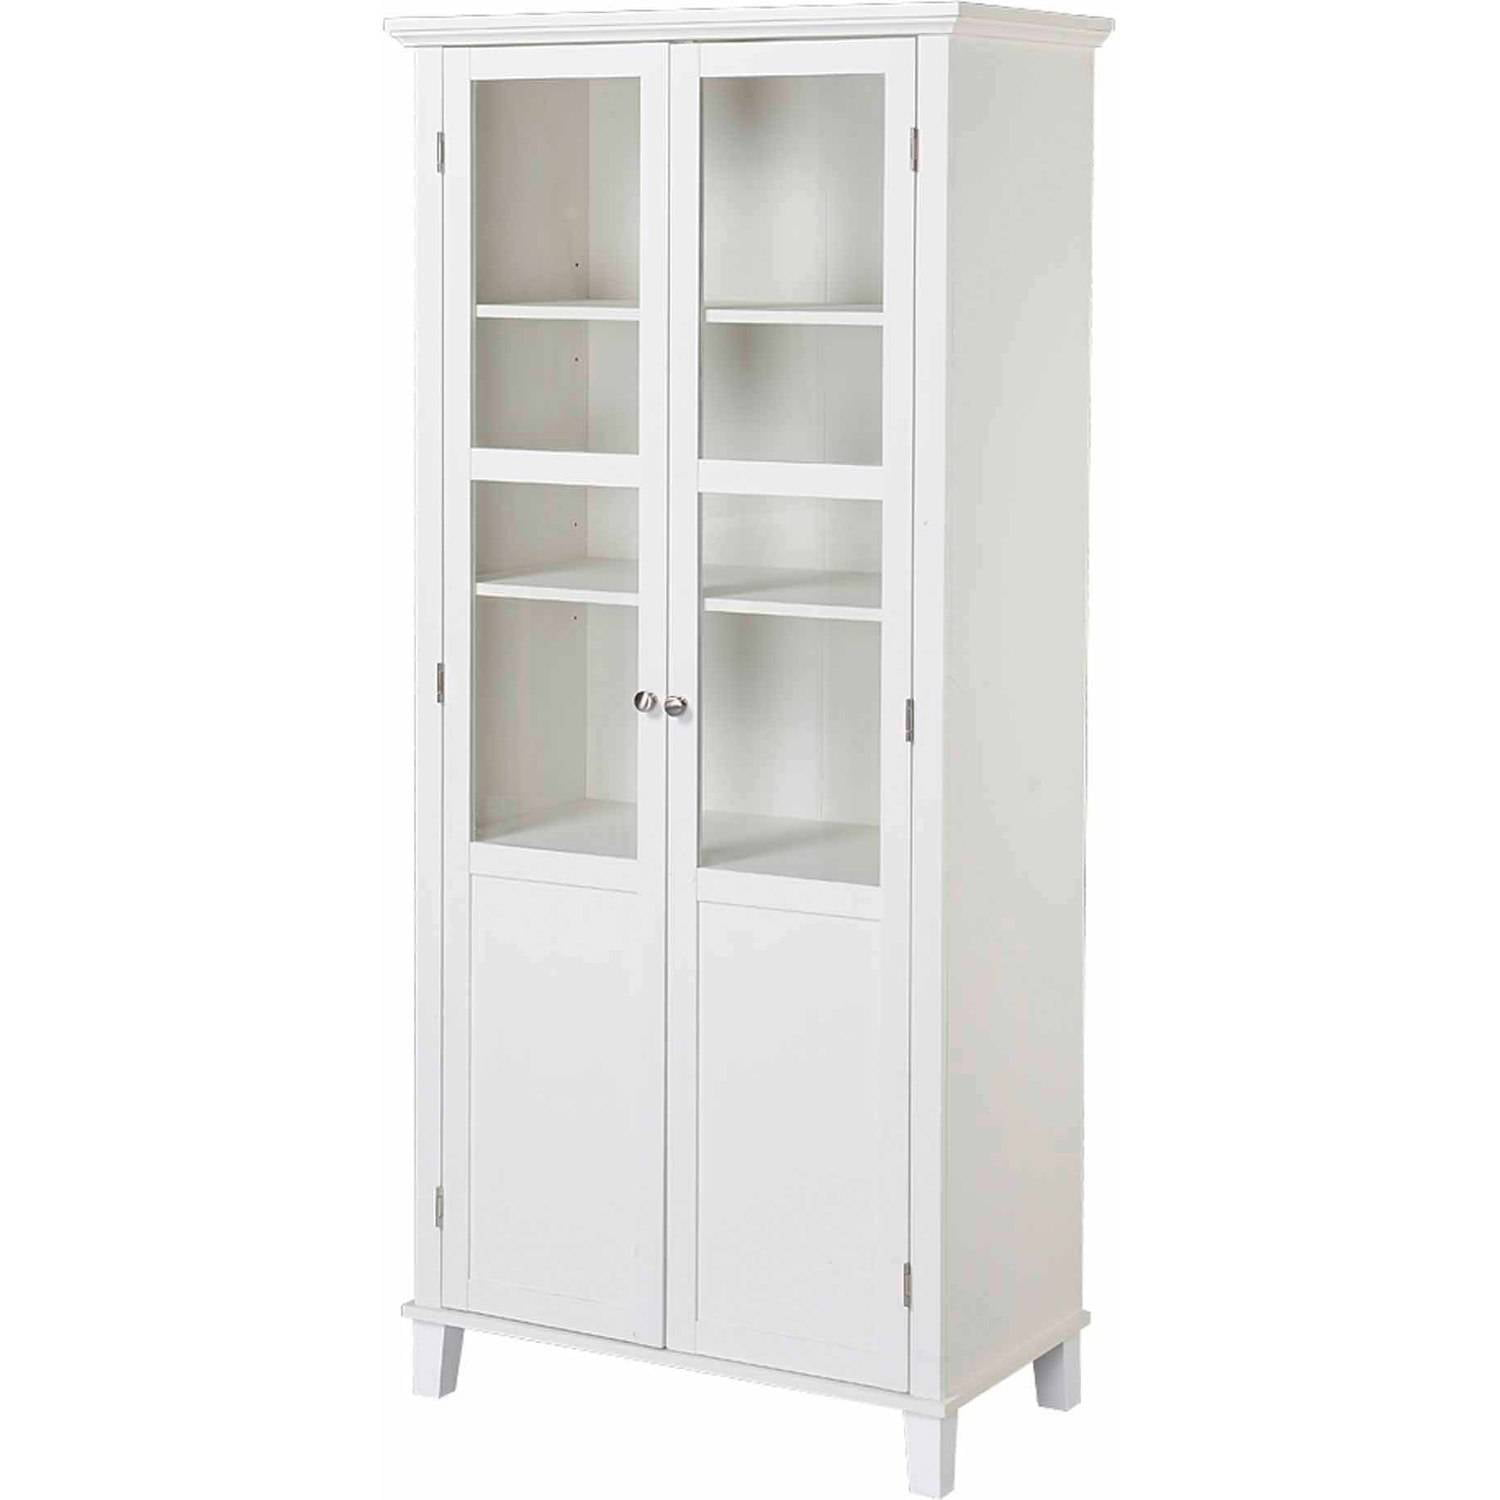 Unique Two Door Storage Cabinet Model